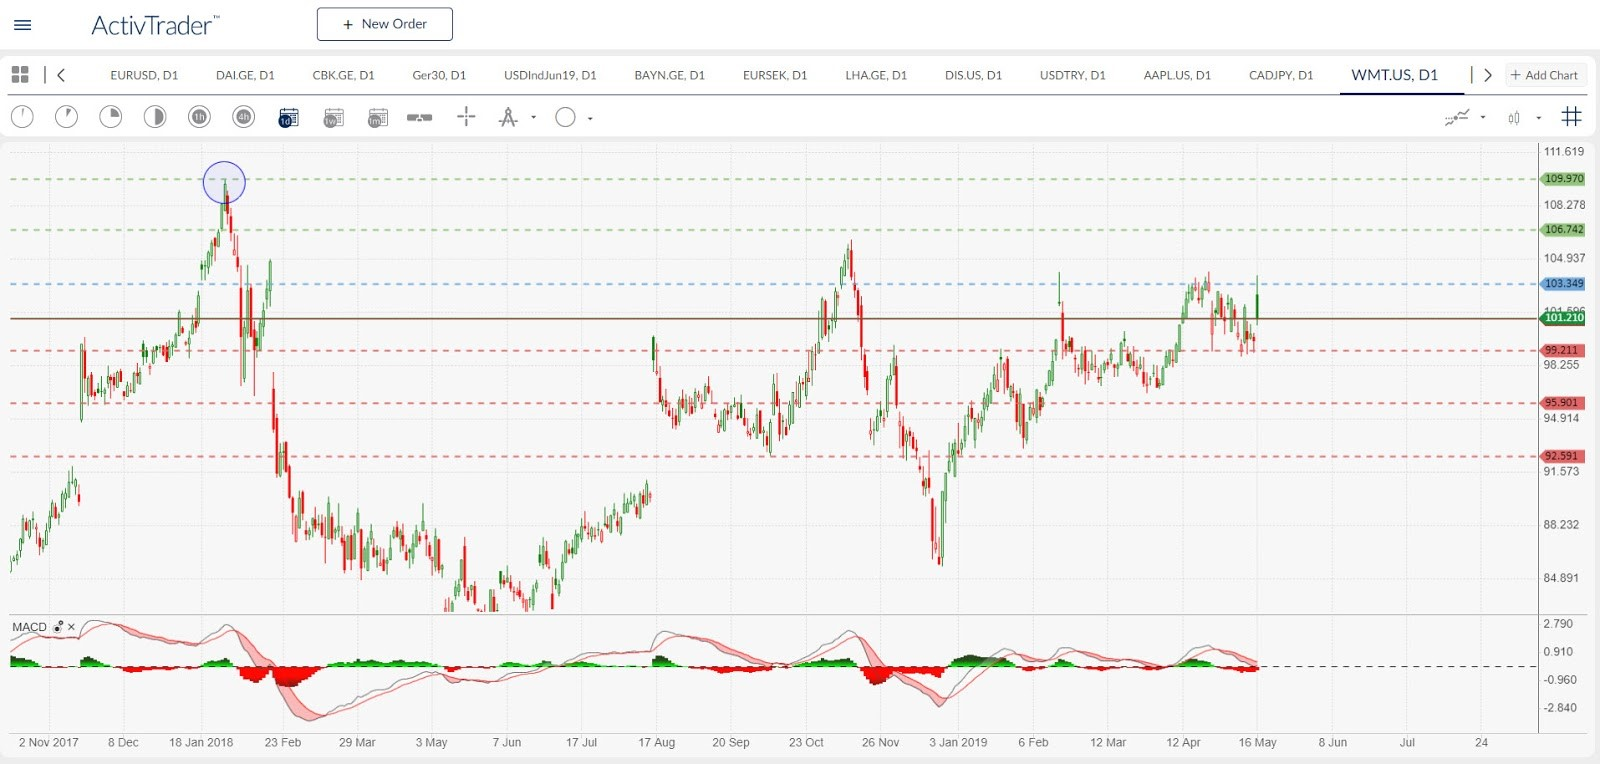 WMT.US - daily chart. Source: ActivTrader